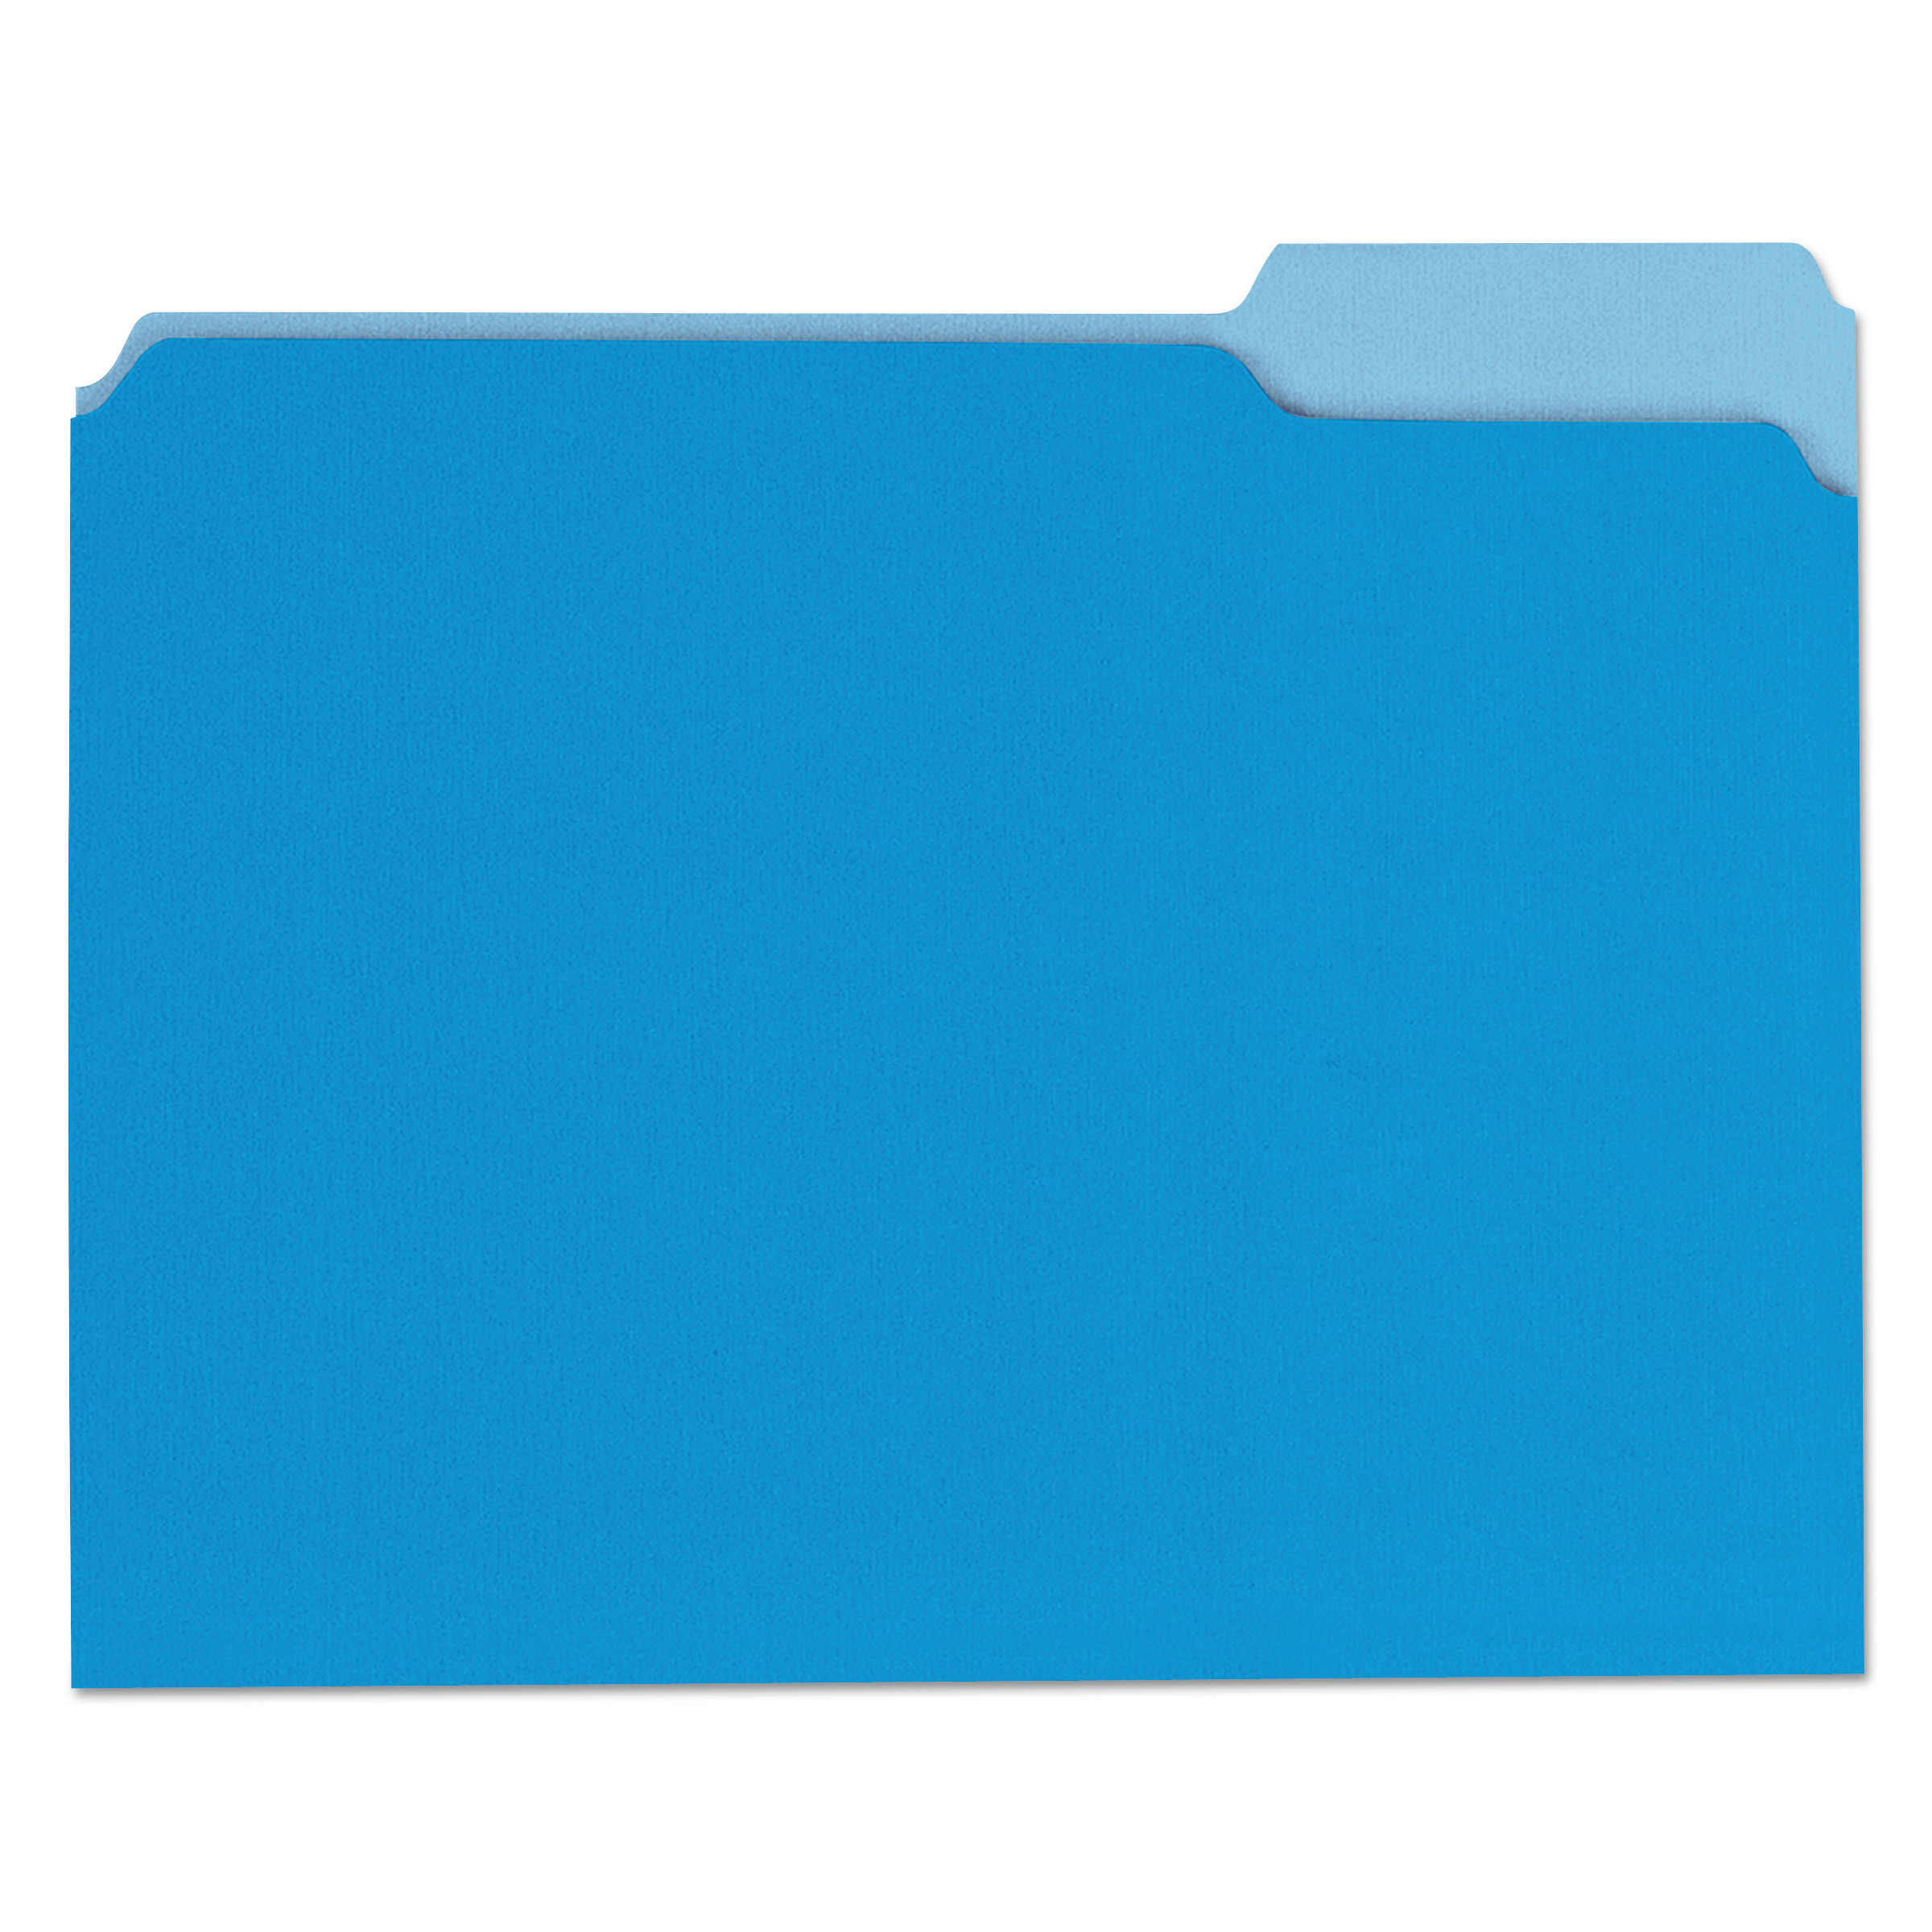 Deluxe Colored Top Tab File Folders, 1/3-Cut Tabs, Letter Size, Blue/Light Blue, 100/Box